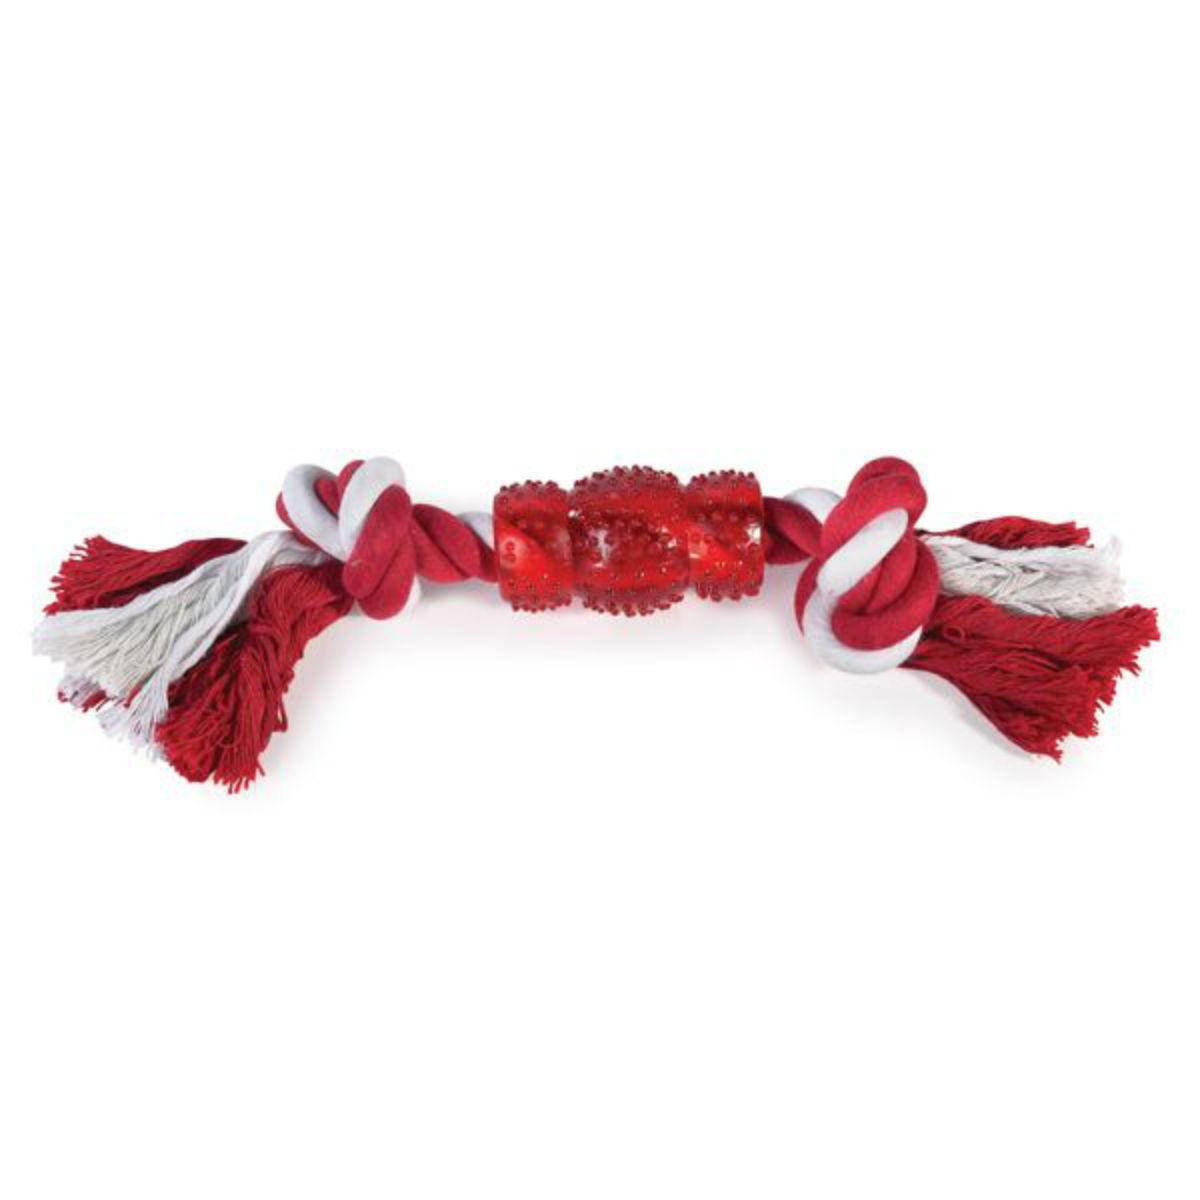 Grriggles Rope N' Rubber Bones Dog Toy - Red